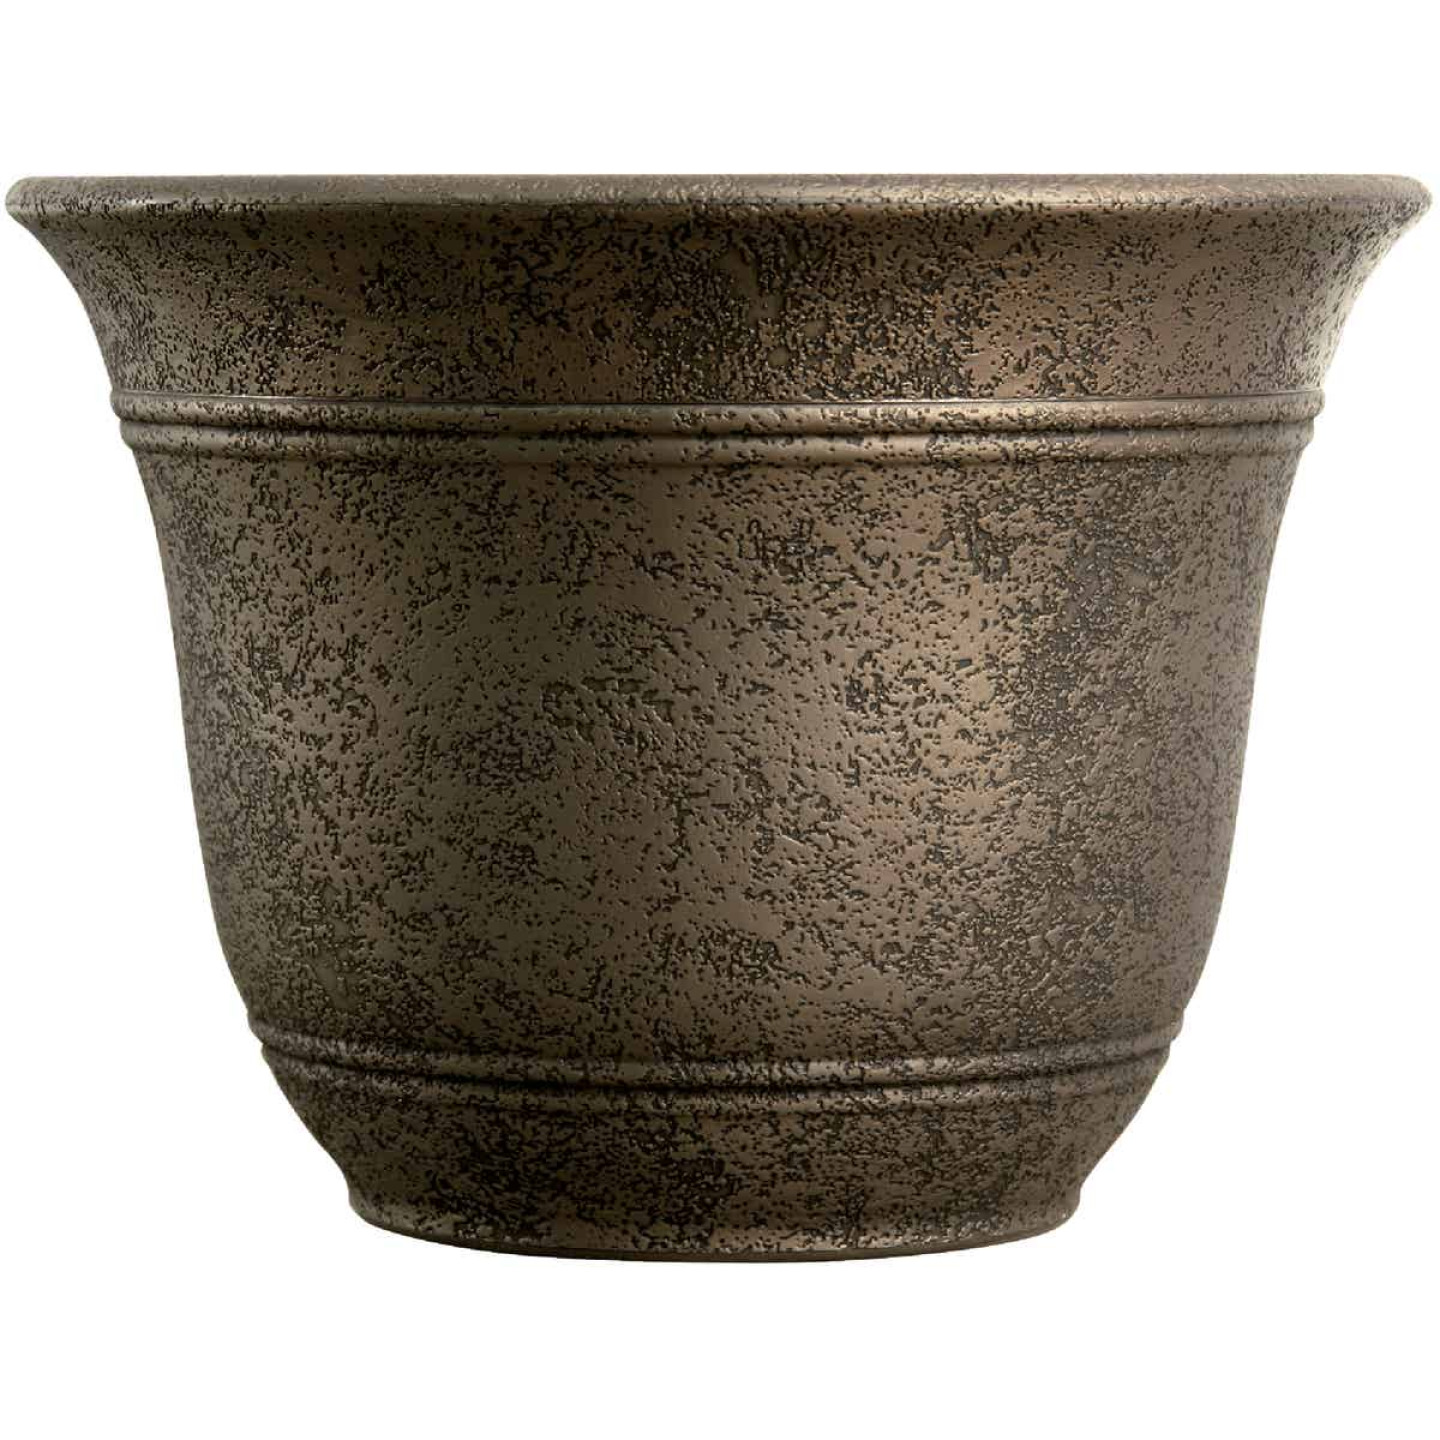 Listo Sierra 11-3/4 In. H. x 16 In. Dia. Nordic Bronze Poly Flower Pot Image 1